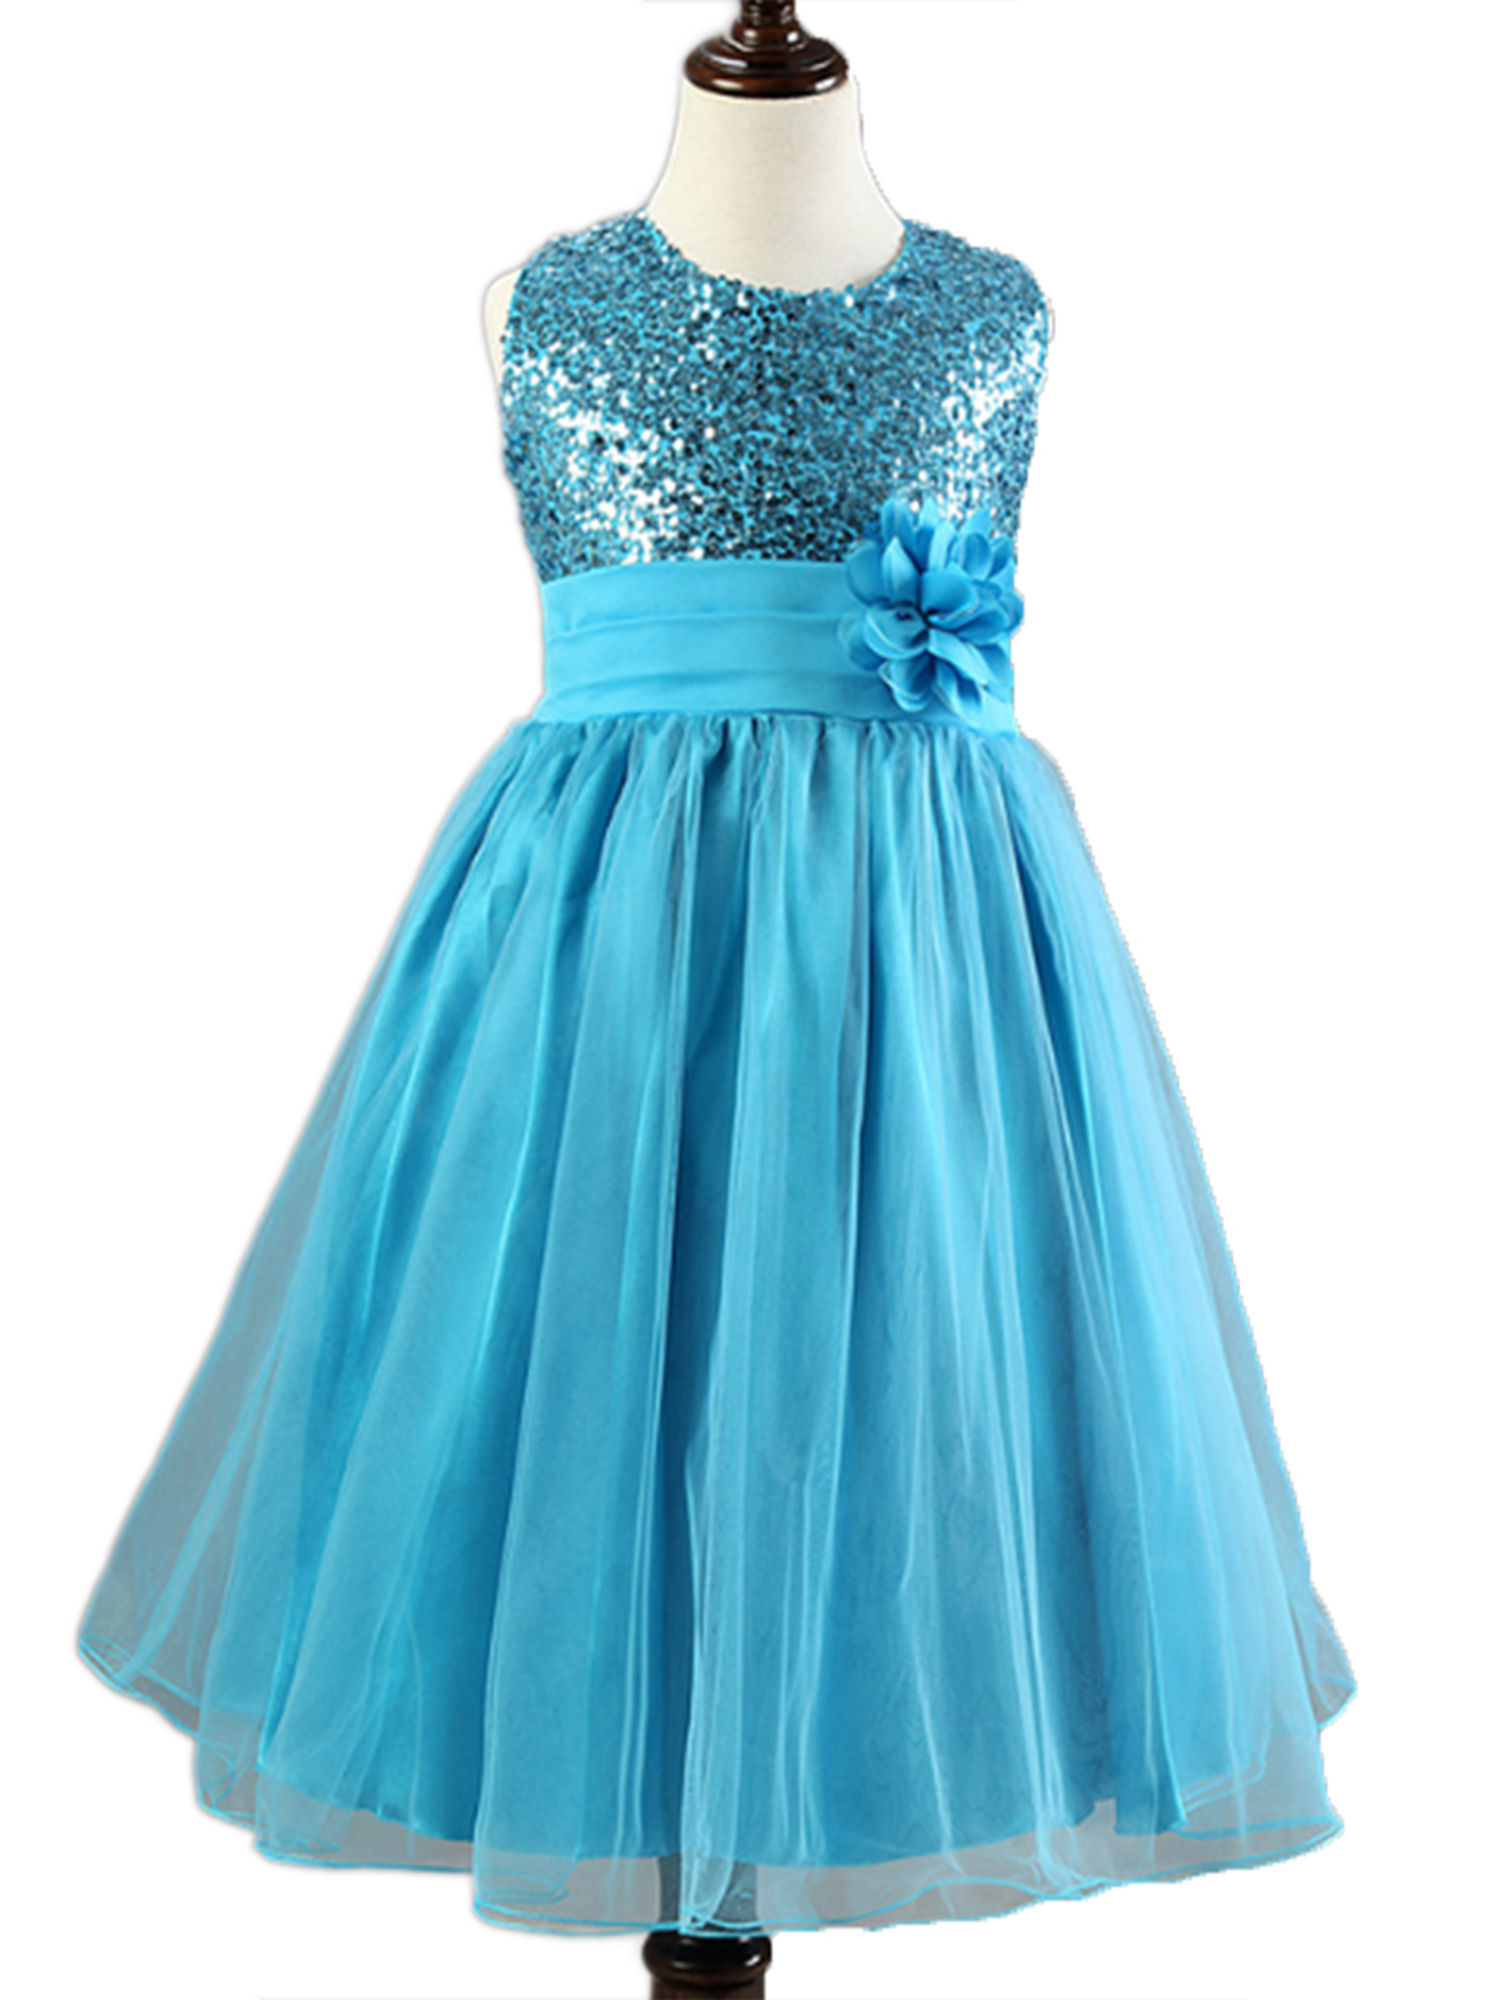 StylesILove Lovely Sequin Flower Girl Dress, 5 Colors (1-2 Years, Blue)